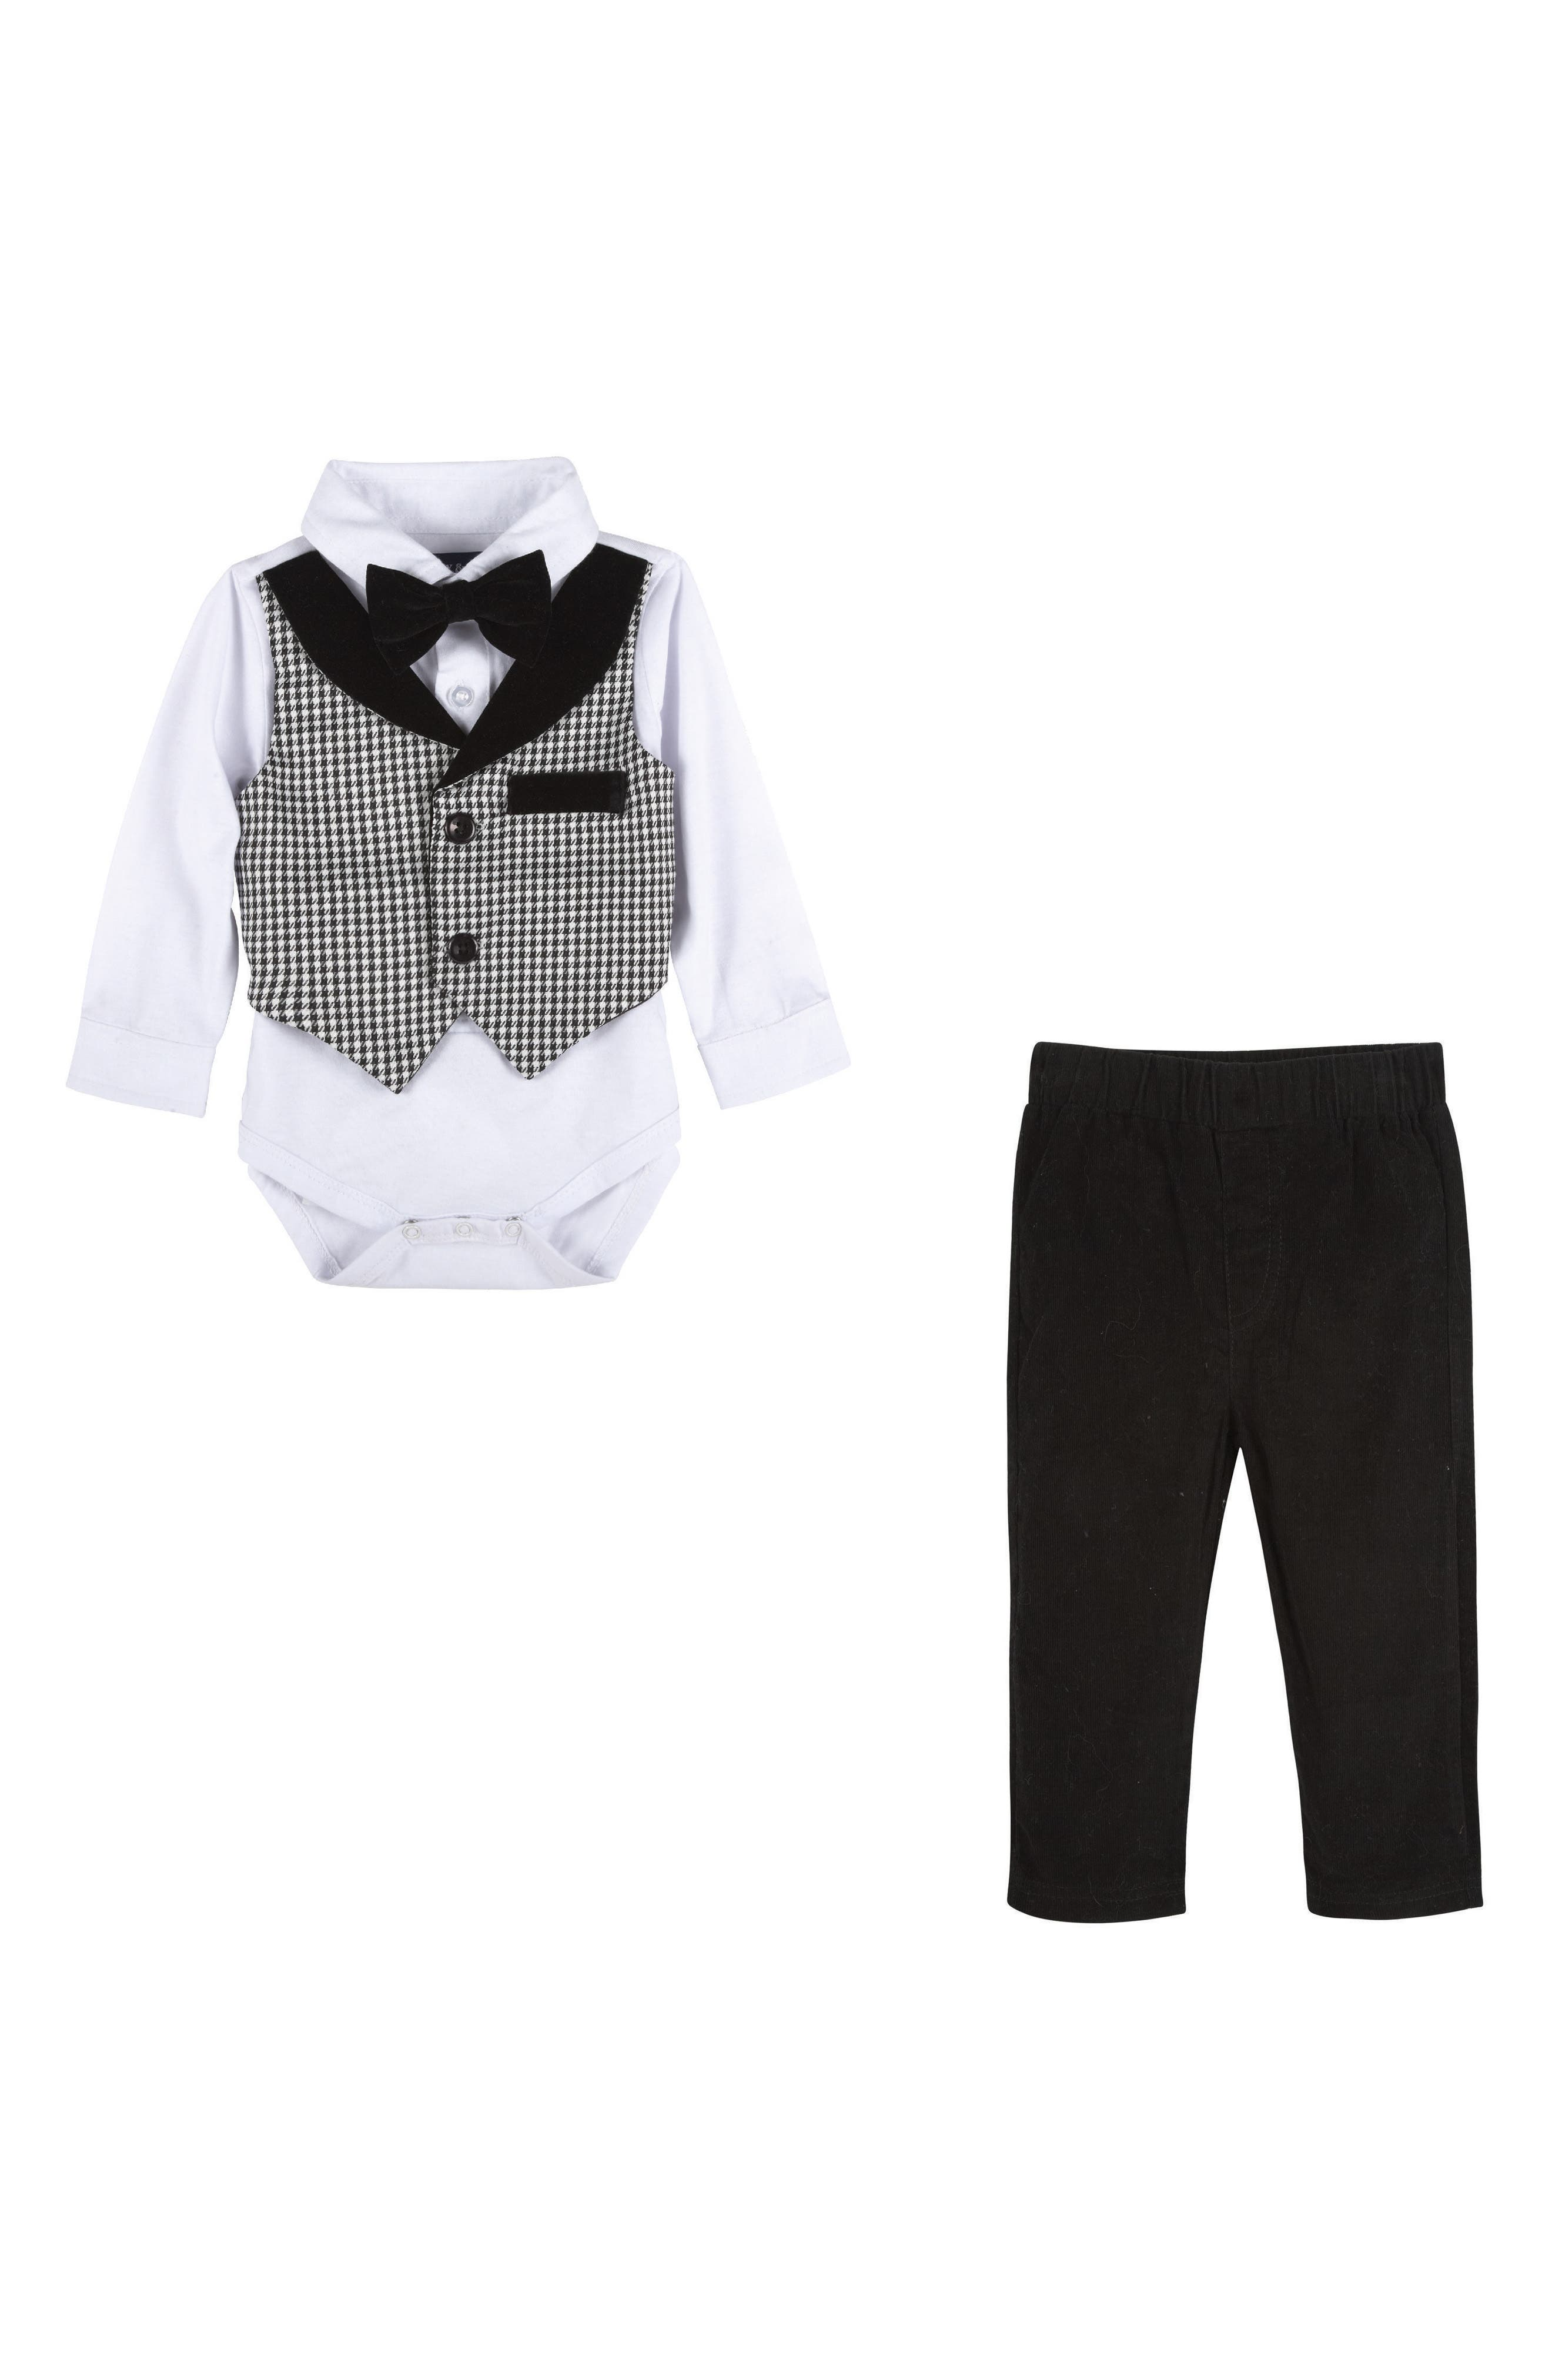 Alternate Image 1 Selected - Andy & Evan Pants, Shirt & Bow Tie Set (Baby Boys)